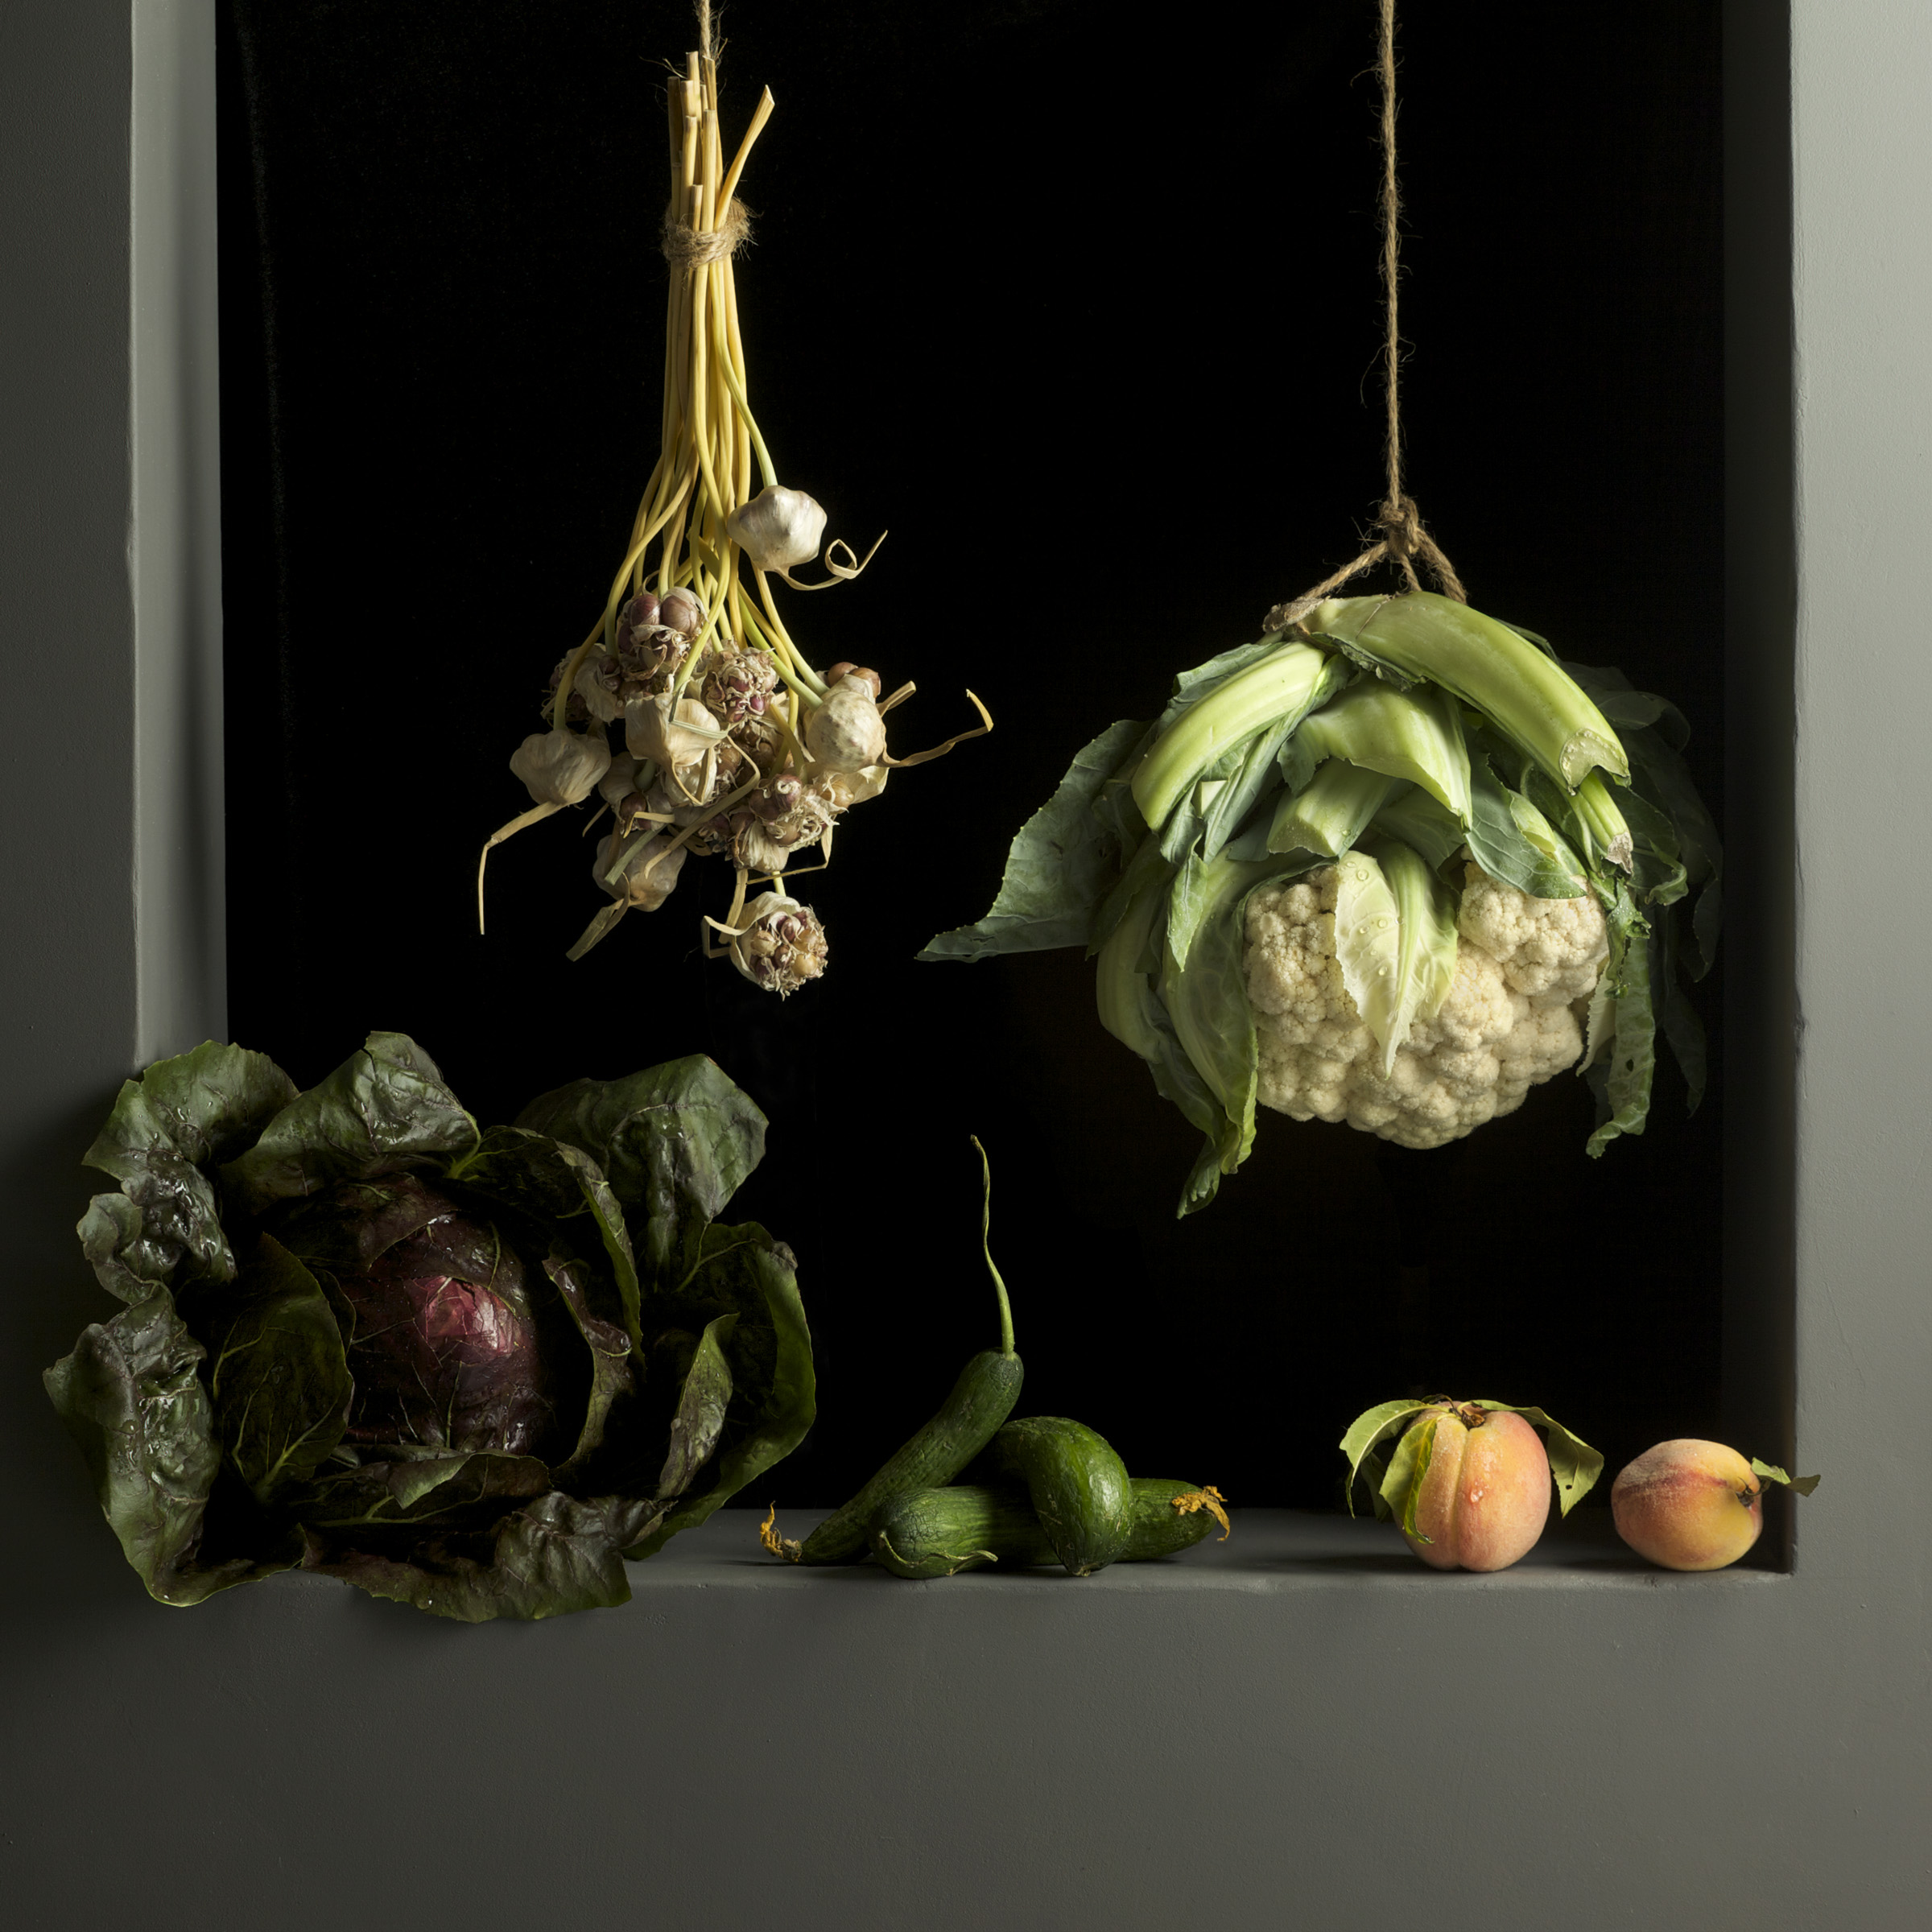 Cauliflower and Peaches, After J.S.C., 2010